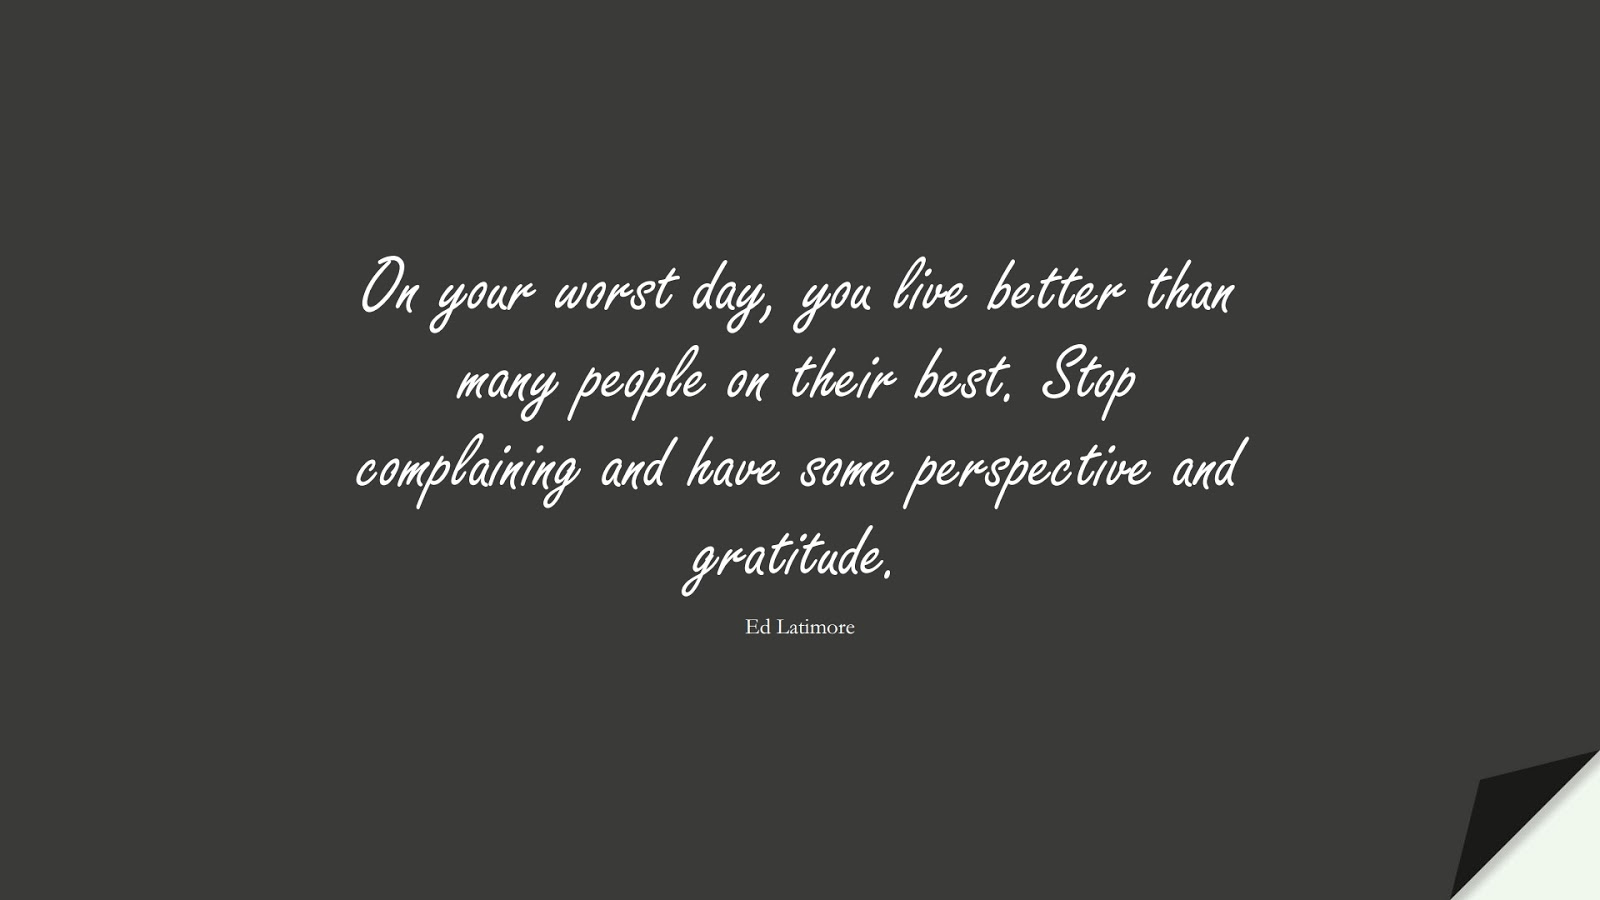 On your worst day, you live better than many people on their best. Stop complaining and have some perspective and gratitude. (Ed Latimore);  #CharacterQuotes